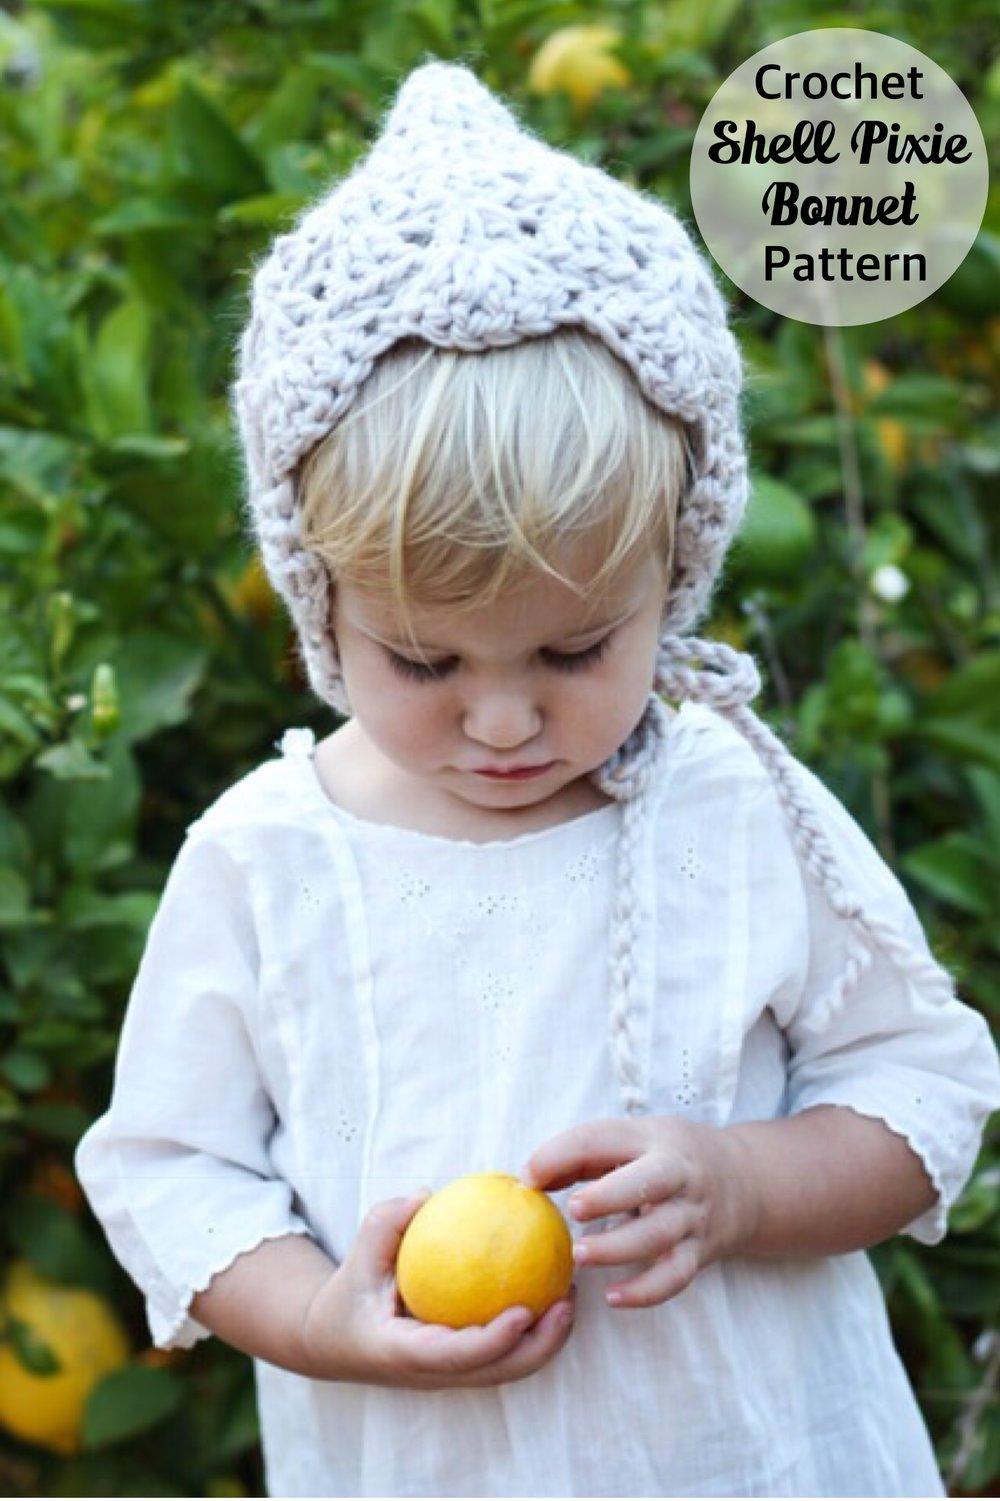 Pattern for Crochet Baby Pixie Bonnet